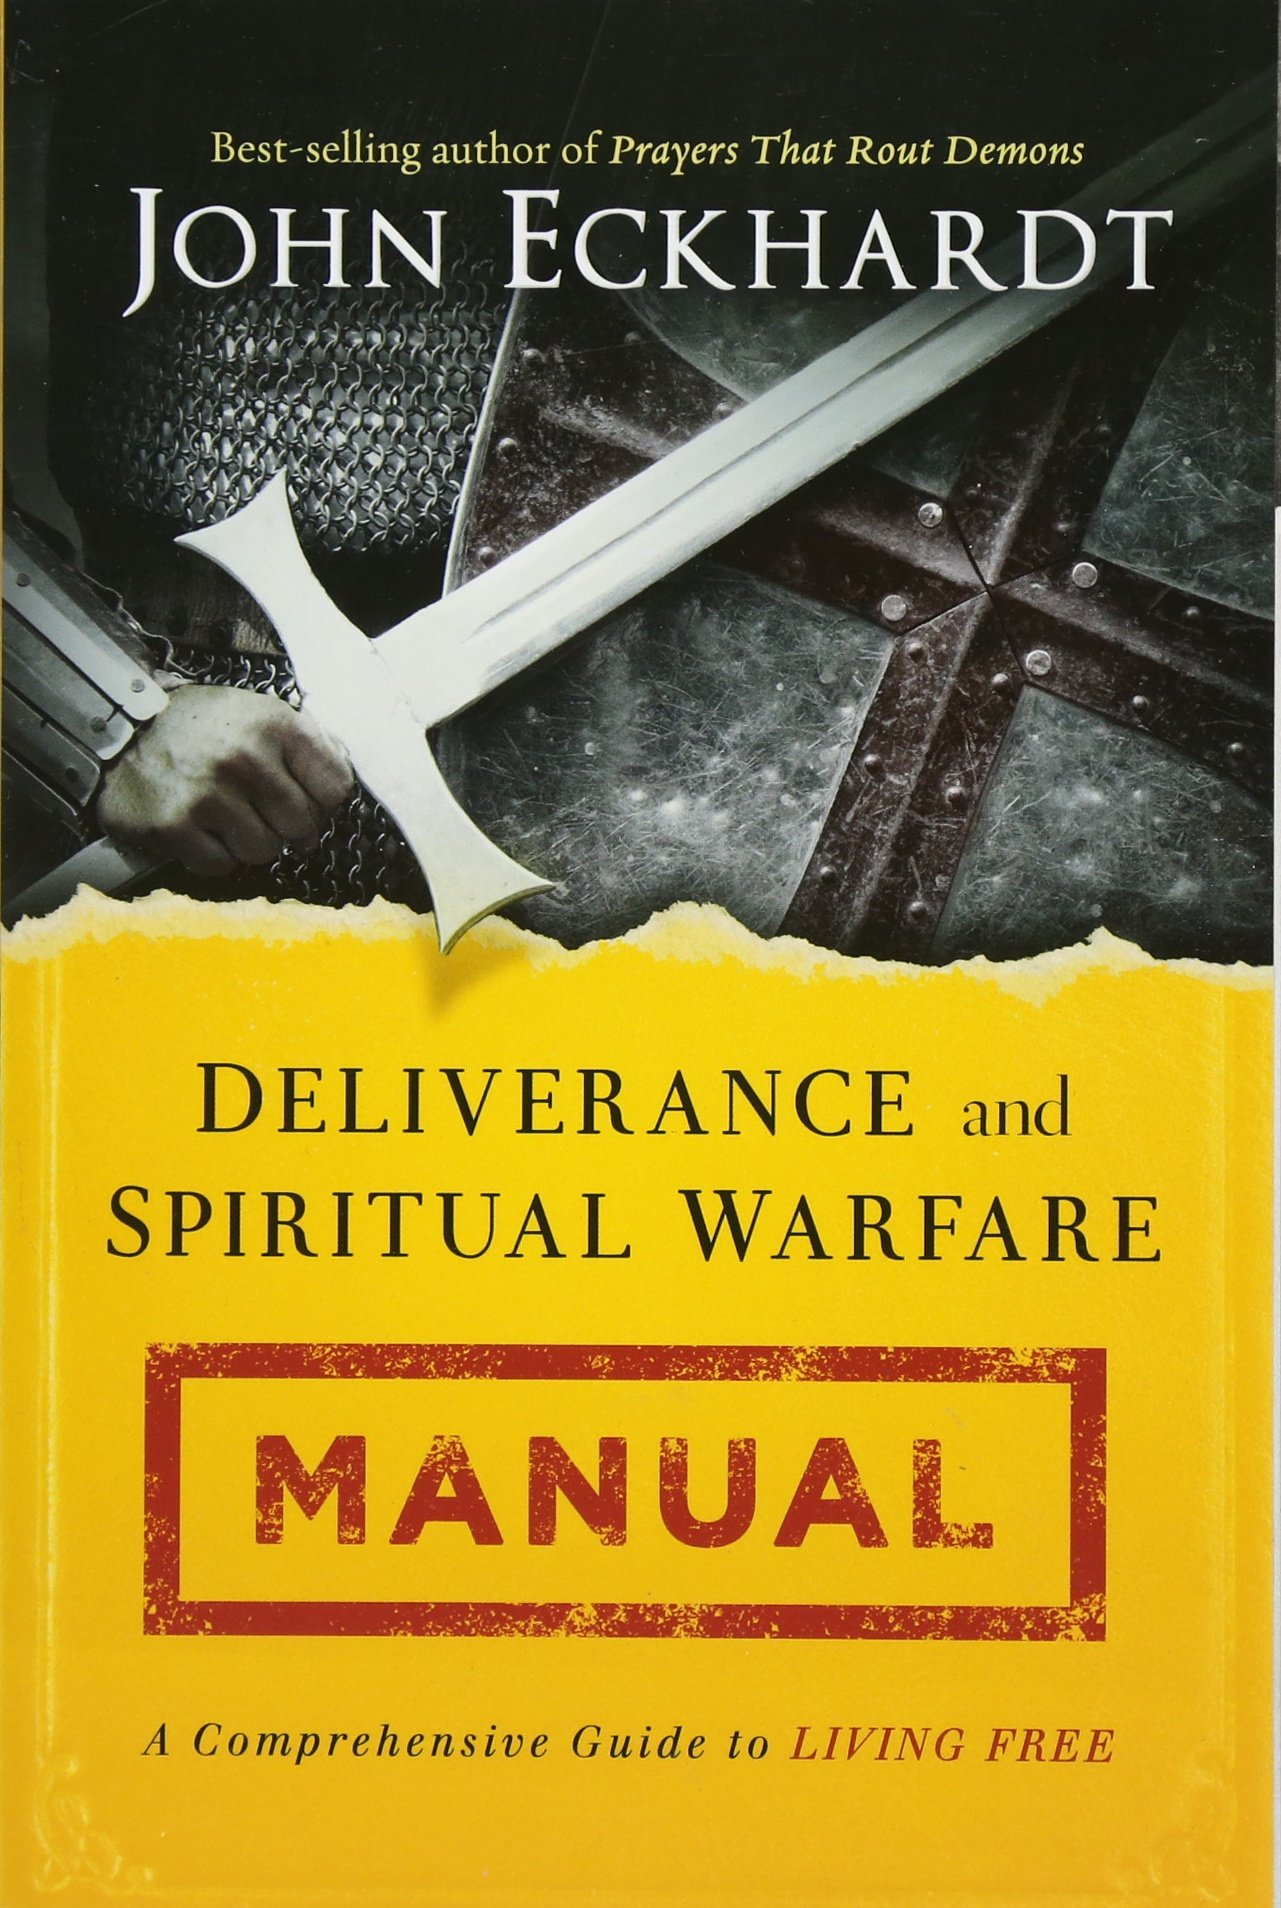 Deliverance and Spiritual Warfare Manual: A Comprehensive Guide to Living  Free: John Eckhardt: 9781621366256: Amazon.com: Books